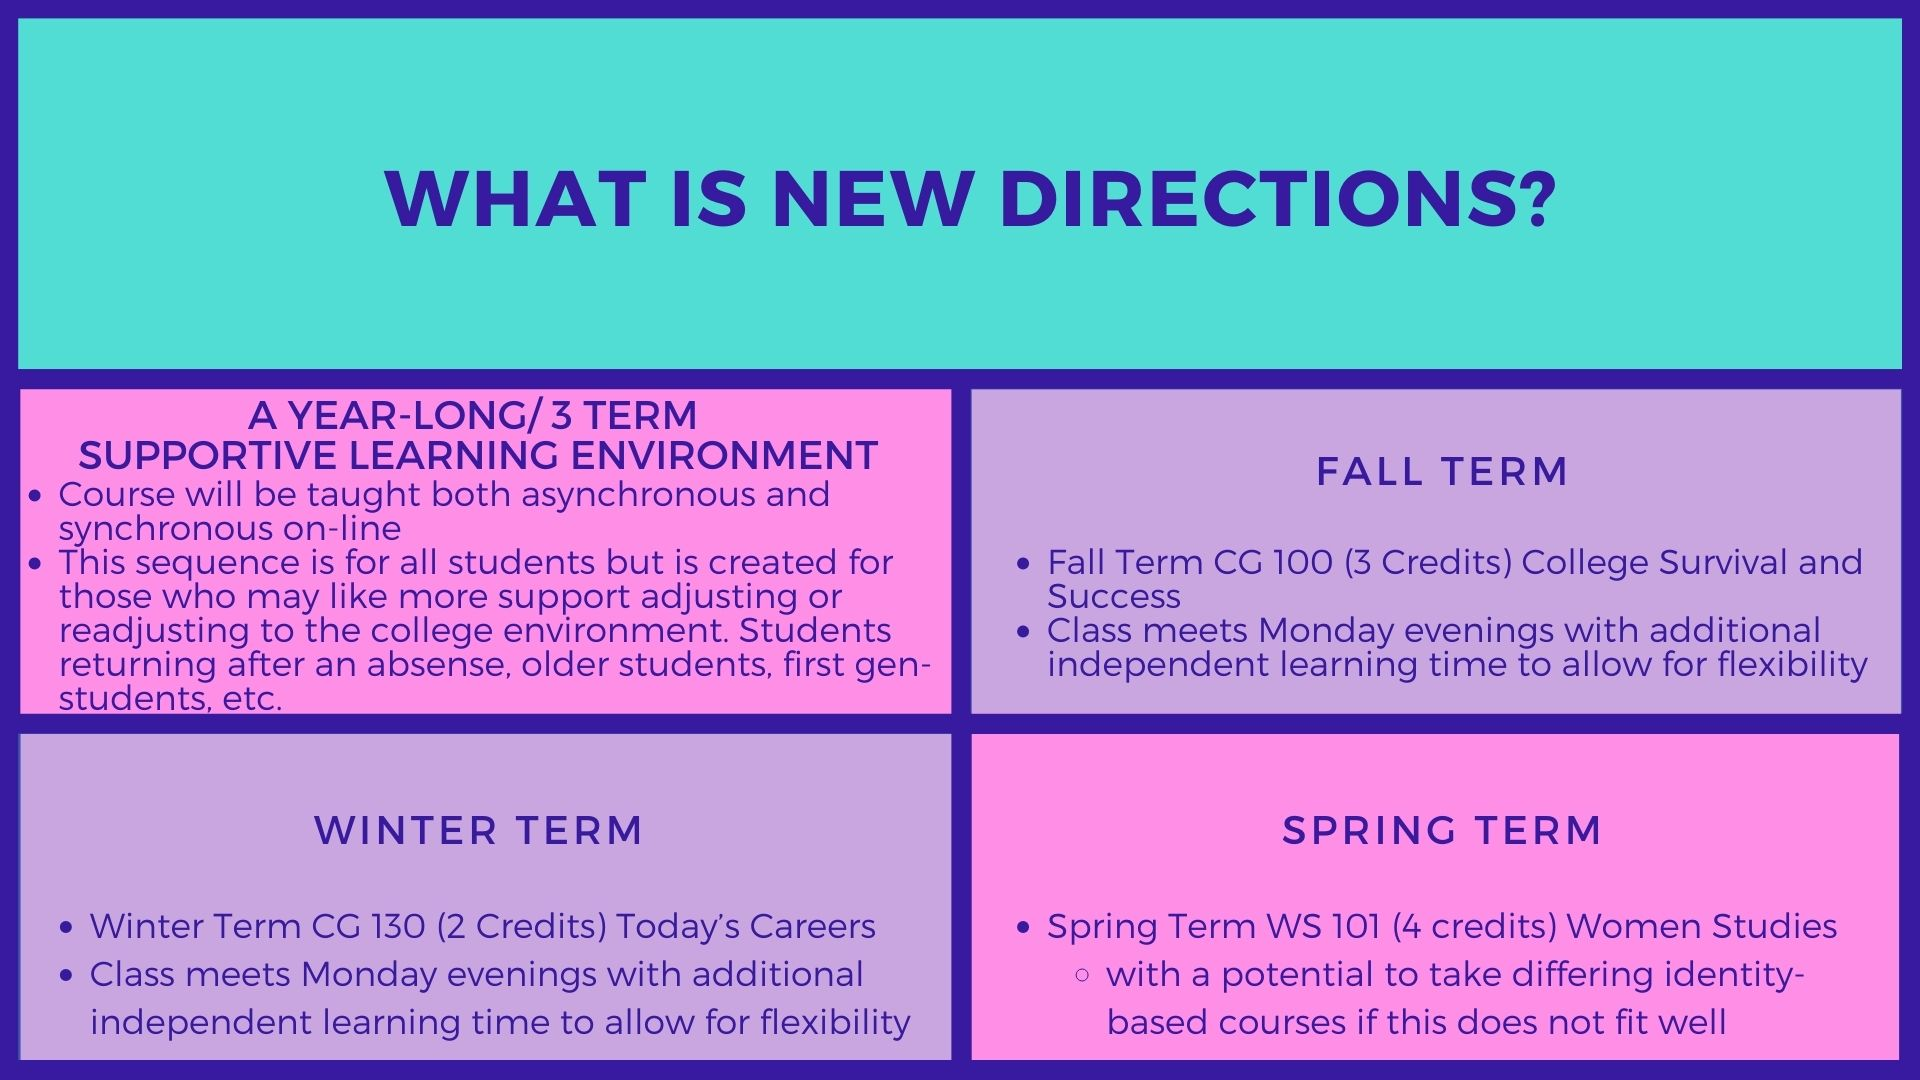 What is New Directions?